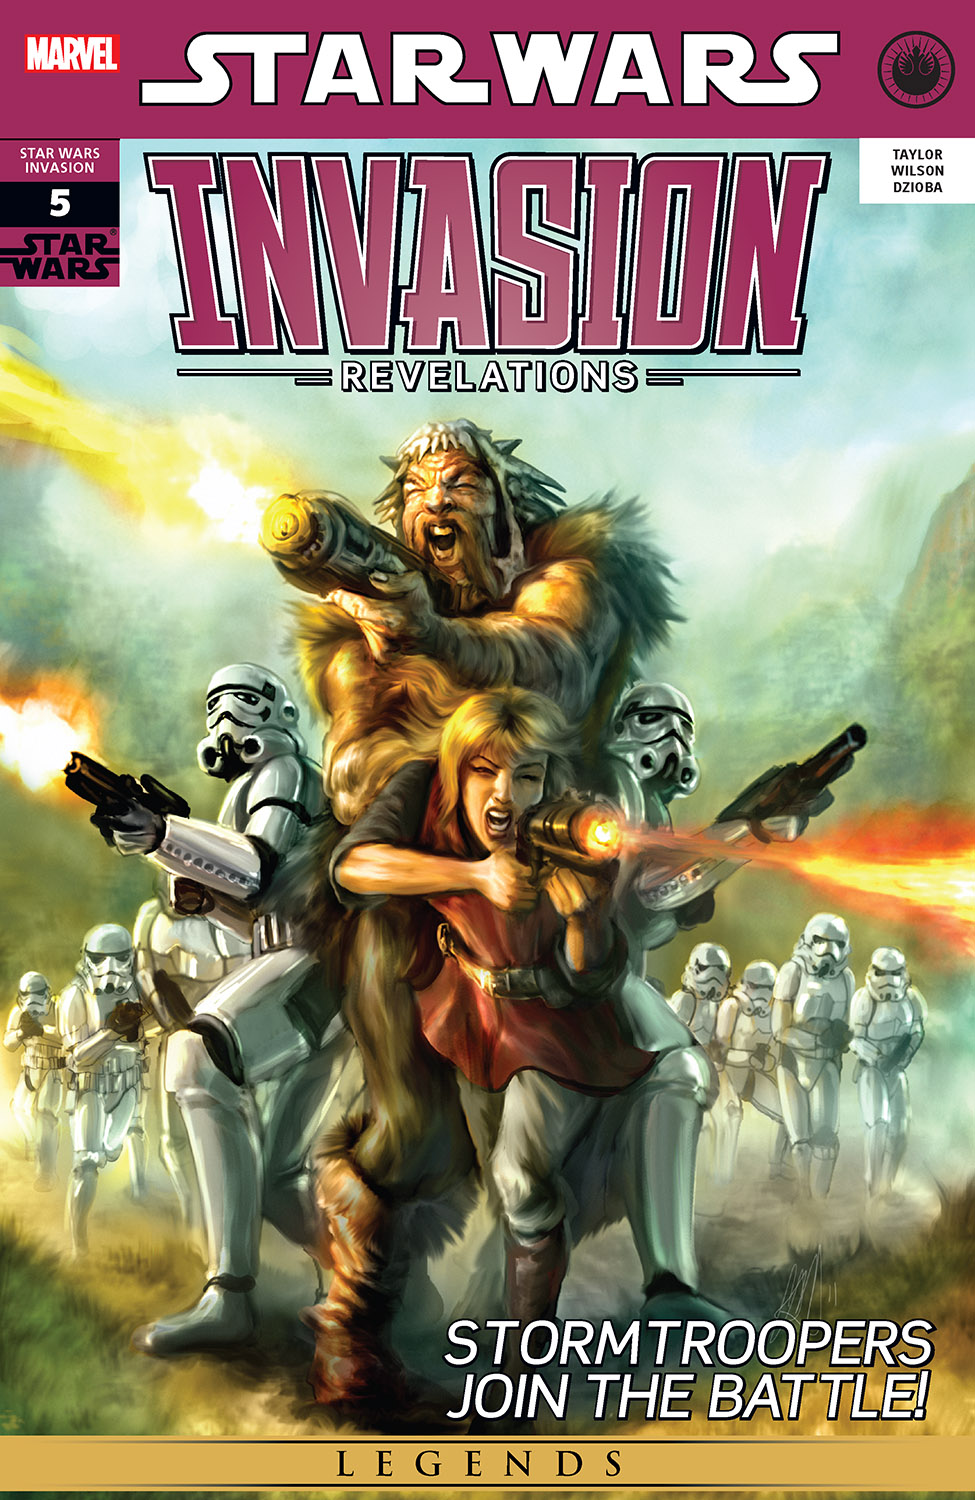 Star Wars: Invasion - Revelations (2011) #5